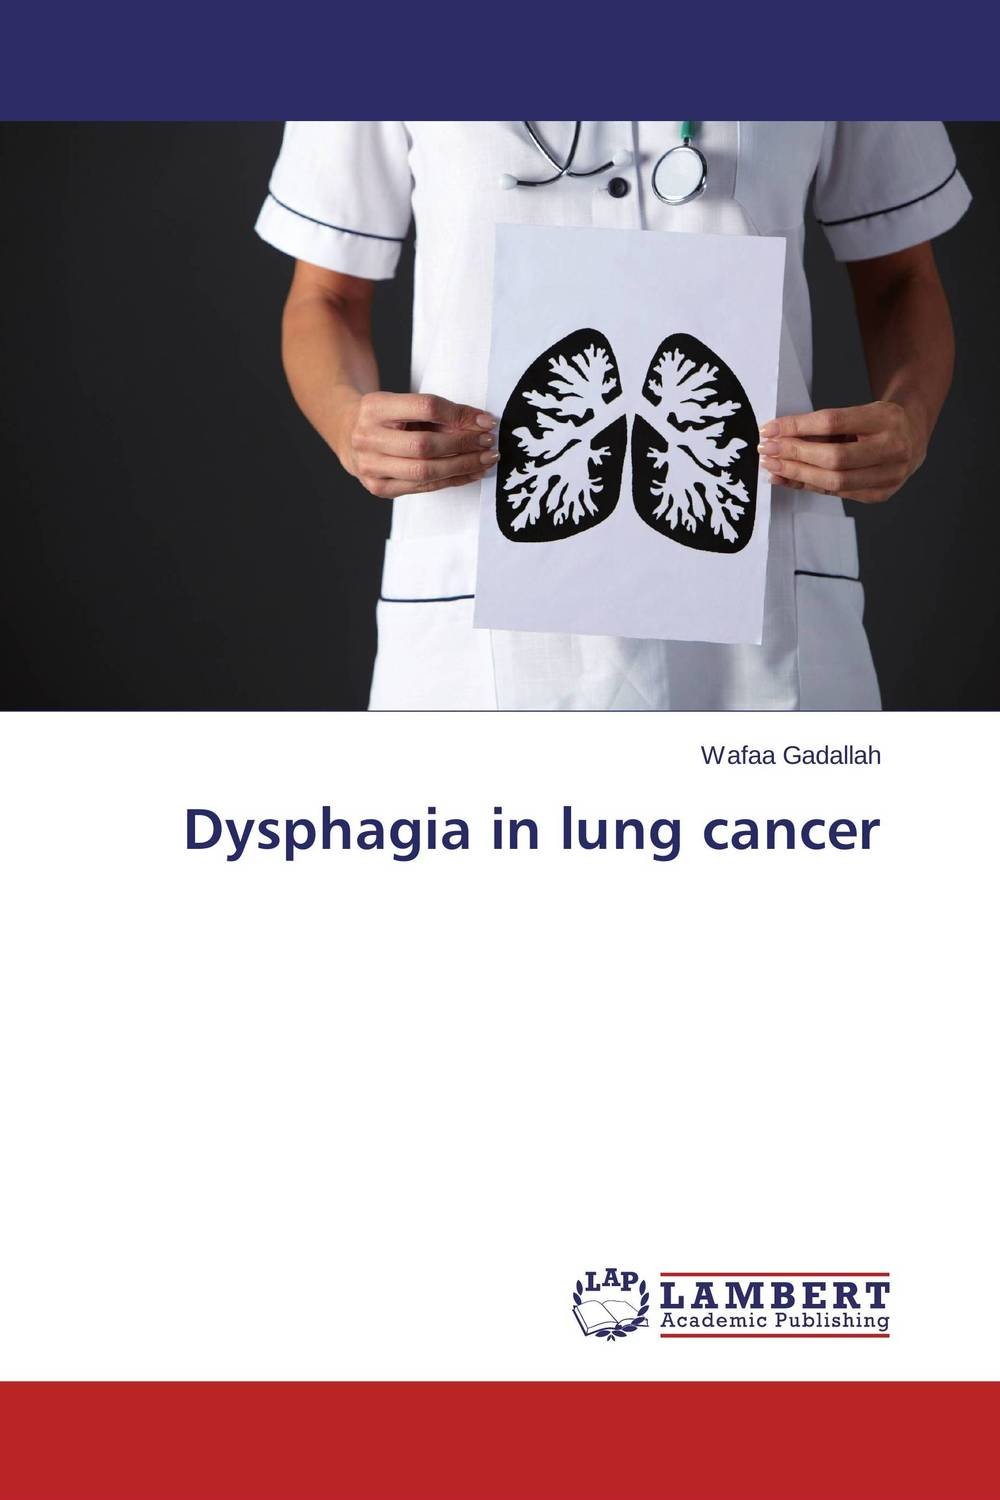 Dysphagia in lung cancer analysis of tp53 and promoter hypermethylation of mgmt in lung cancer